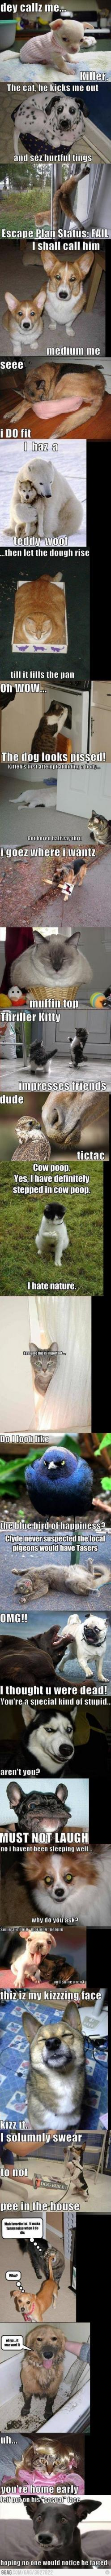 To funny < that's not my post, but yes it's cute, but are you dedicating it to funny or is it just TOO funny?: